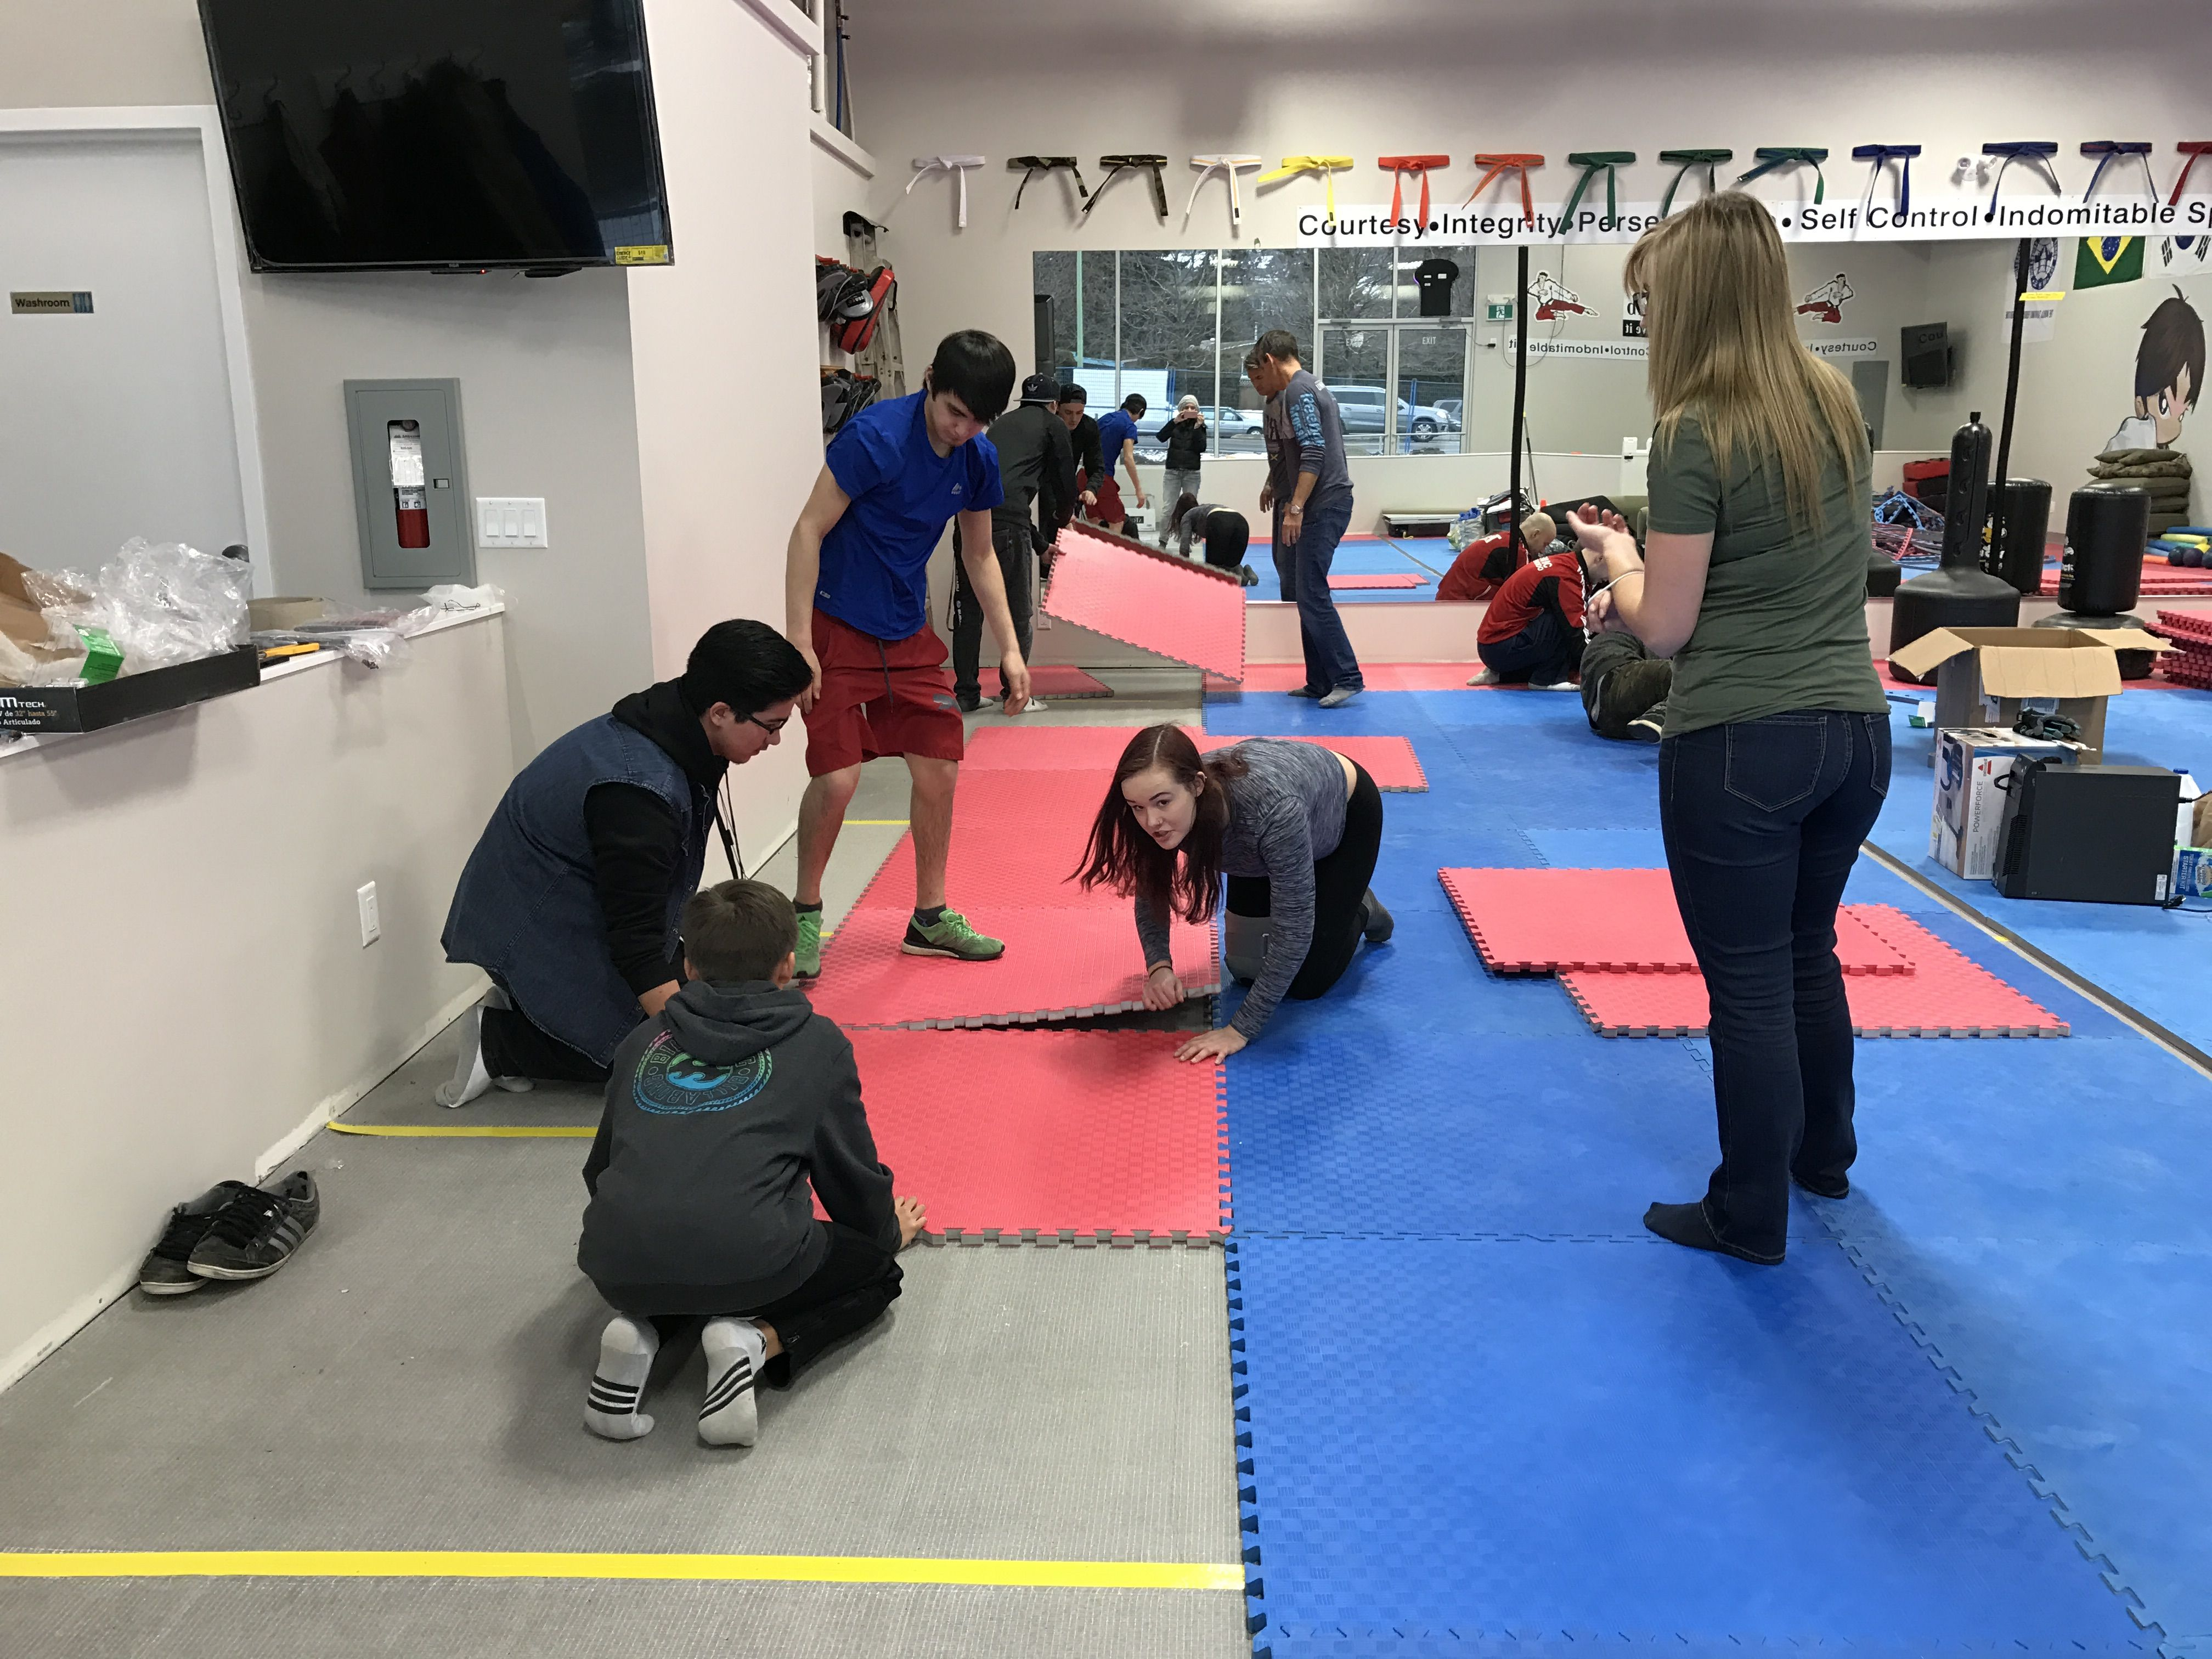 Some great pics of the team who came out and helped get the final touches done.   Go Team GMA! Thank you again to all our great volunteers.   www.glenmoremartialarts.com 250-868-8690  #teamwork #team #work #hardwork #glenmoremartialarts #kelowna #glenmore #martialarts #kids #sports #kidsmartialarts #martialartskelowna #afterschool #birthdayparties #open #selfdefense #confidence #respect #manners #fun